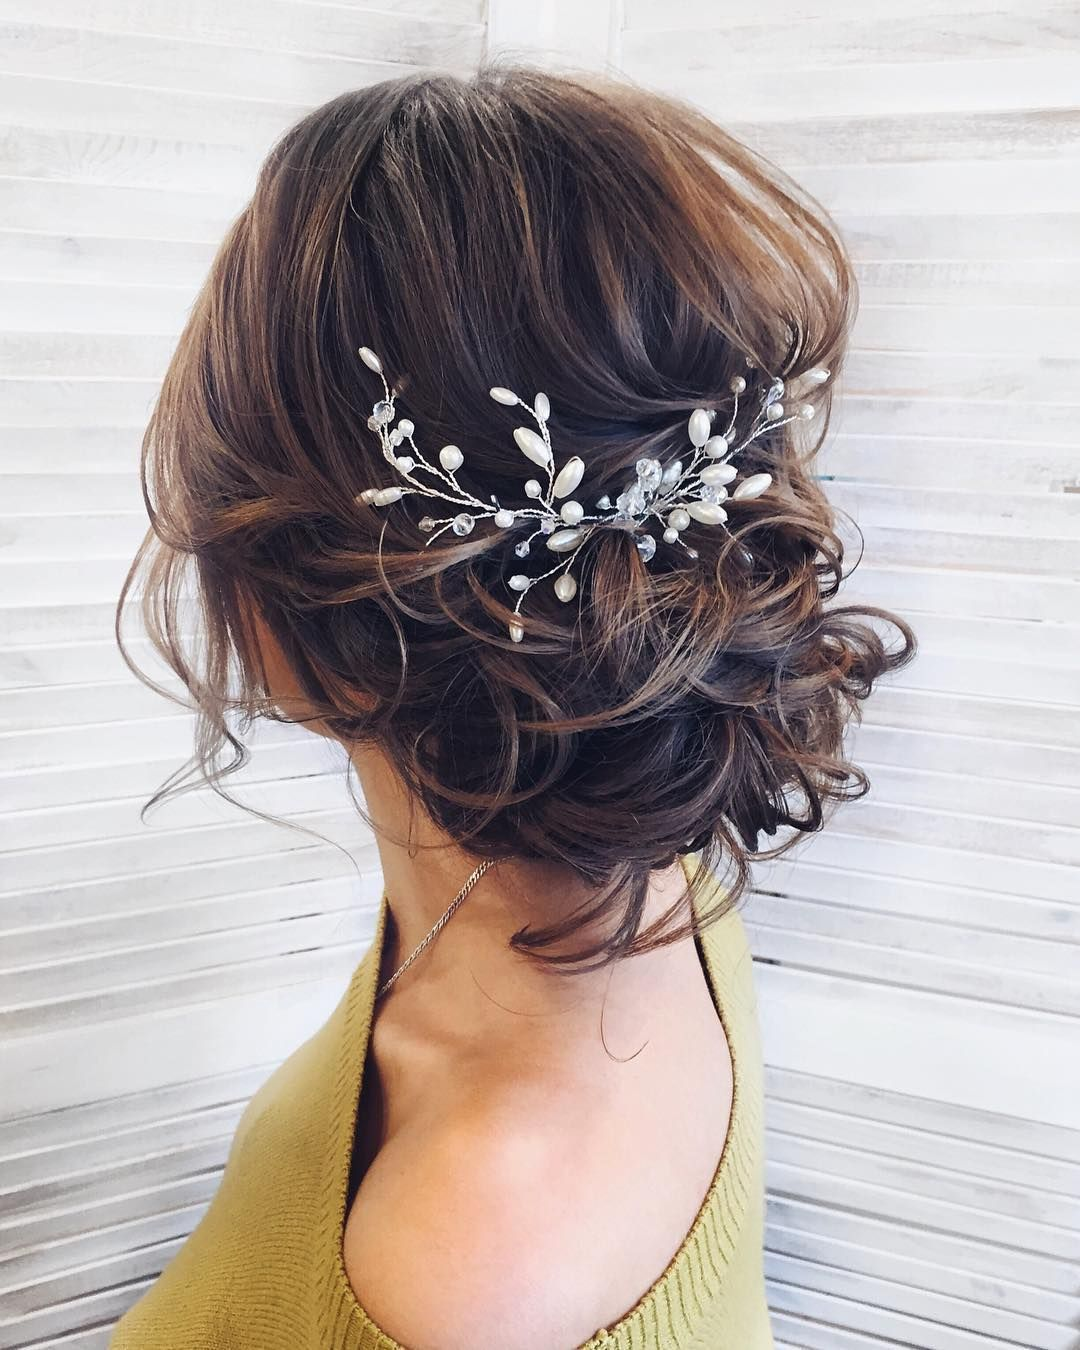 100 Gorgeous Wedding Hair From Ceremony To Reception Romantic Wedding Hair Wedding Hair Inspiration Wedding Hair And Makeup